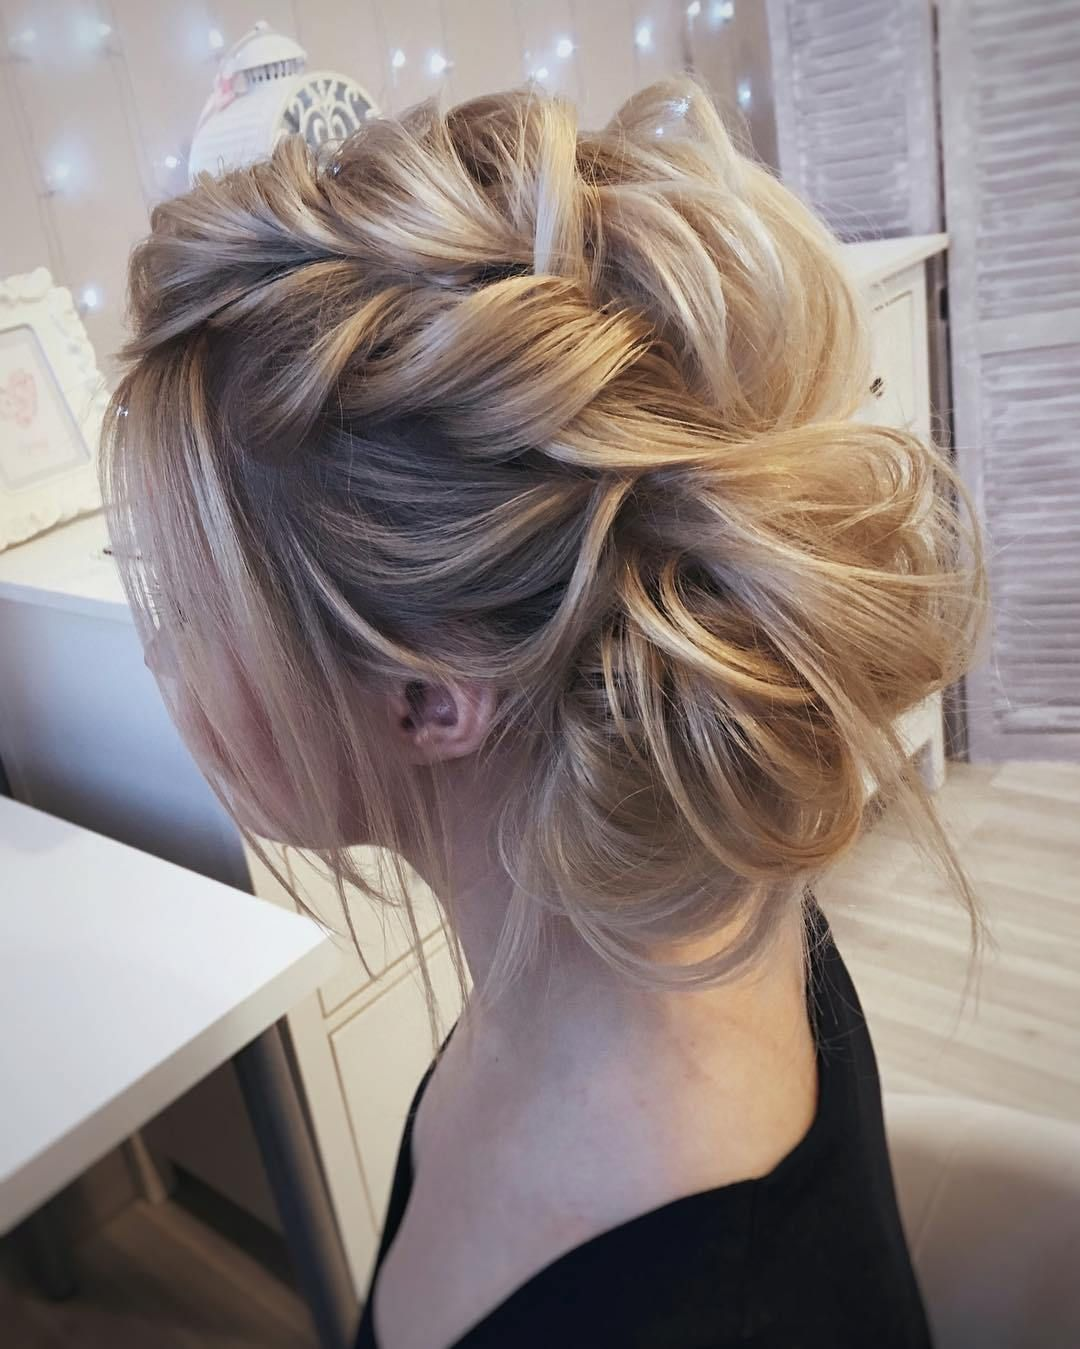 Beautiful Braided Updo Hairstyle 1 Top Ideas To Try